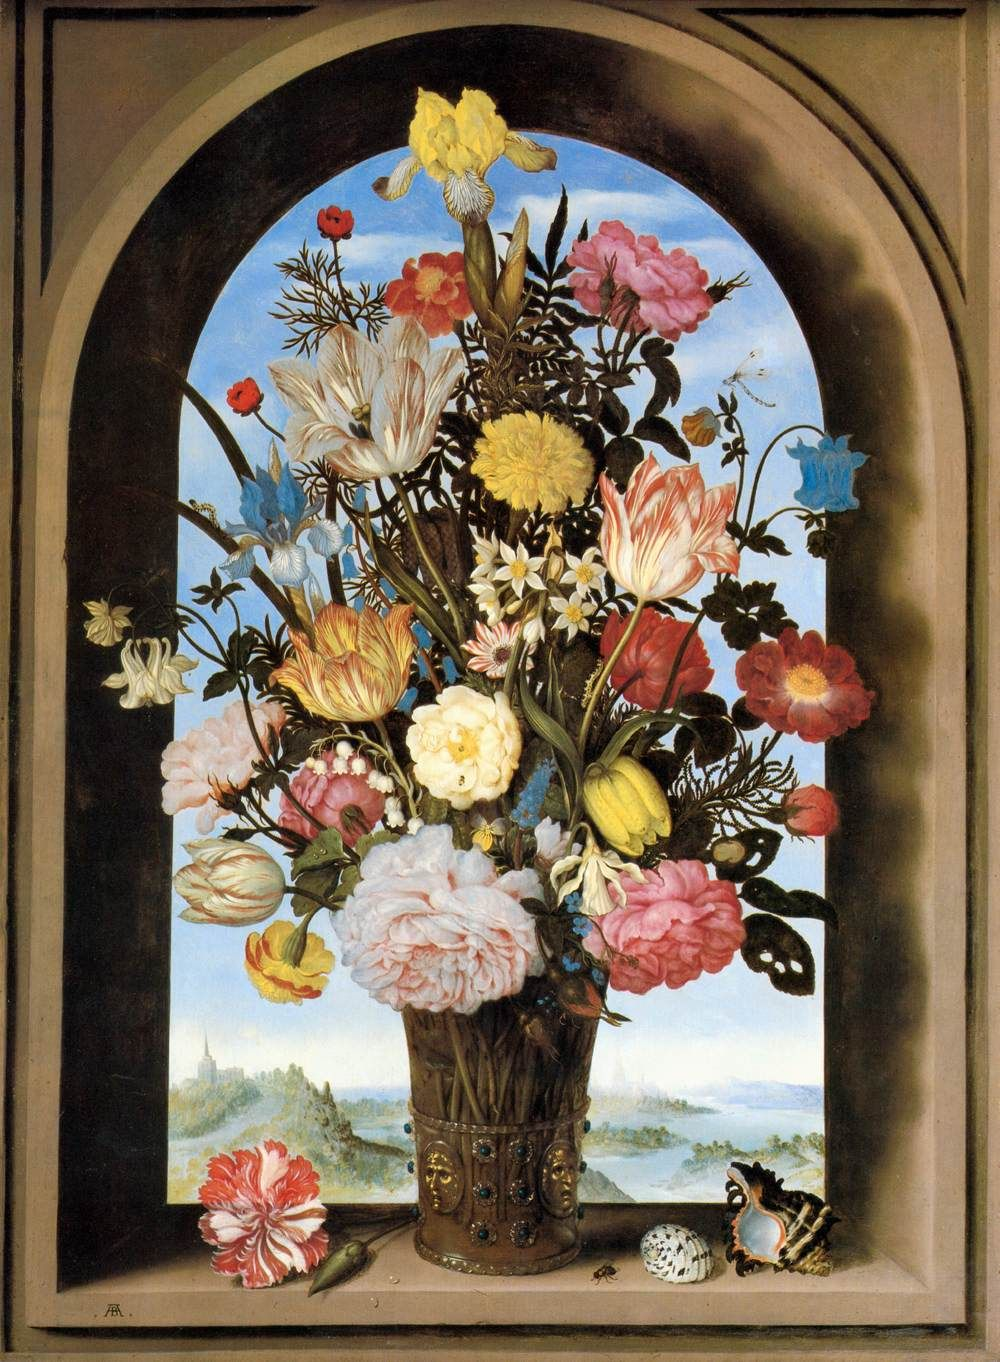 The origin of flower giving what are you really saying gifts vase with flowers in a window by ambrosius bosschaert the elder 1620 is a vibrant inspiration for mays art bead scene monthly cha reviewsmspy